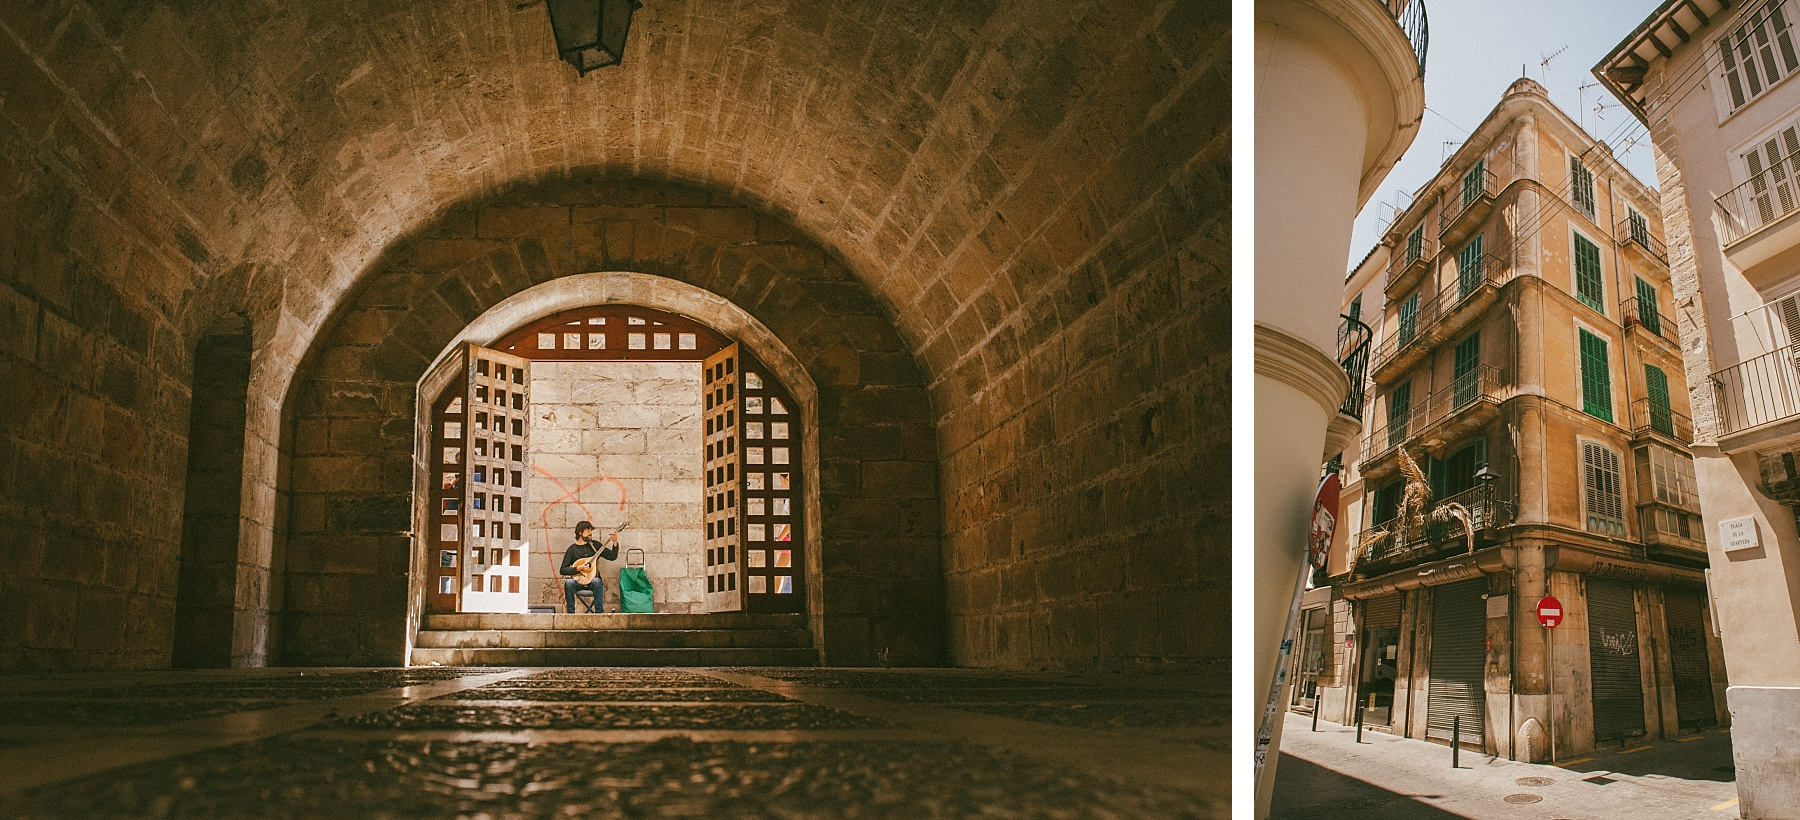 Photo of Palma De Mallorca, by wedding photographer Matt Lee